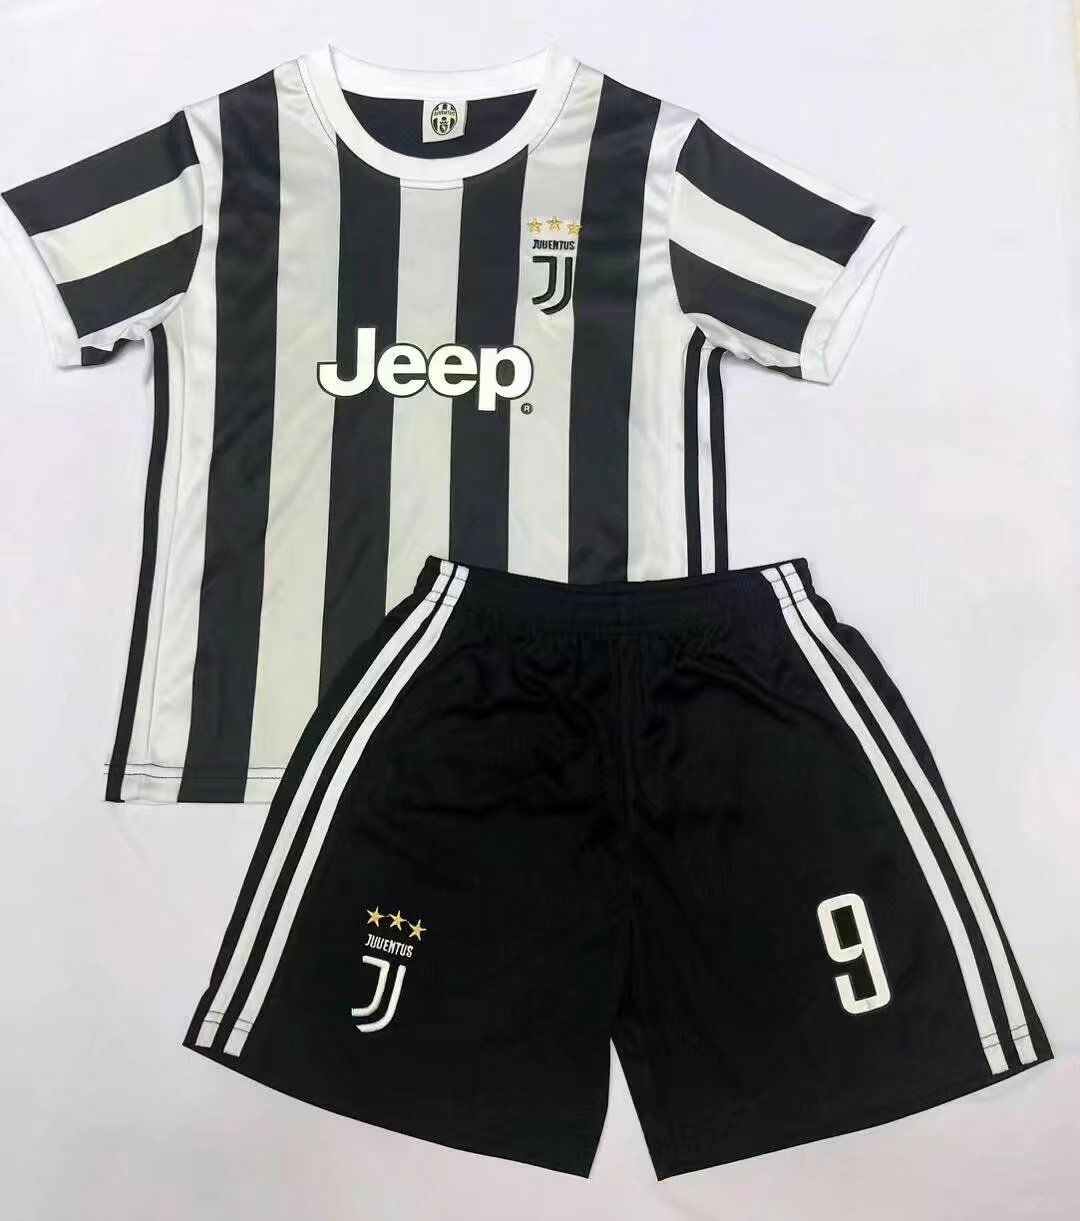 buy online 351fc 6df52 17-18 Cheap Kids Juventus Home Soccer Jersey Uniform Black ...